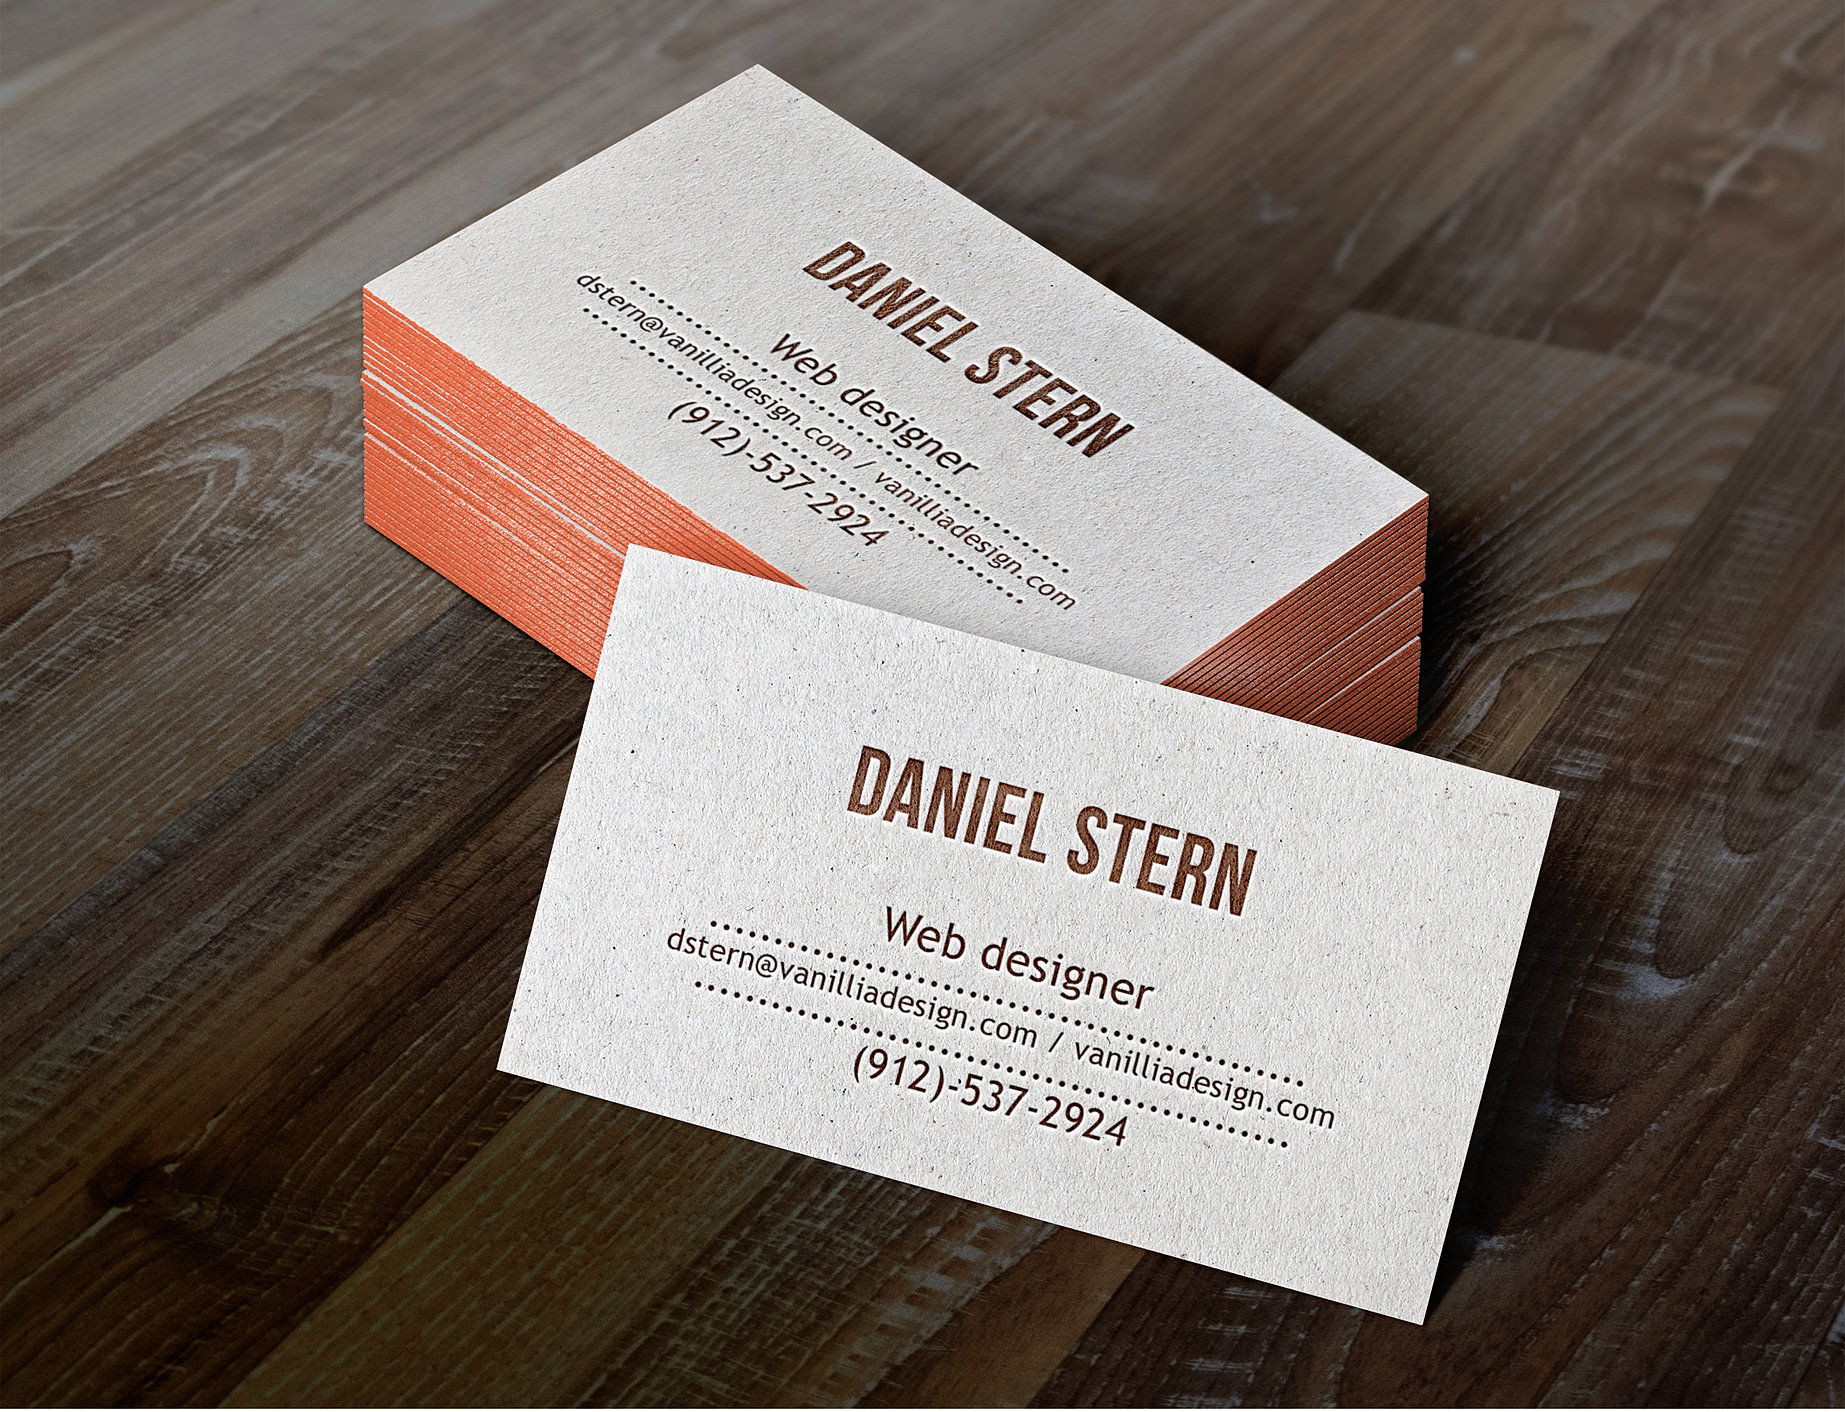 Magic productions business card design letterpress business cards mockup daniel sterng reheart Gallery